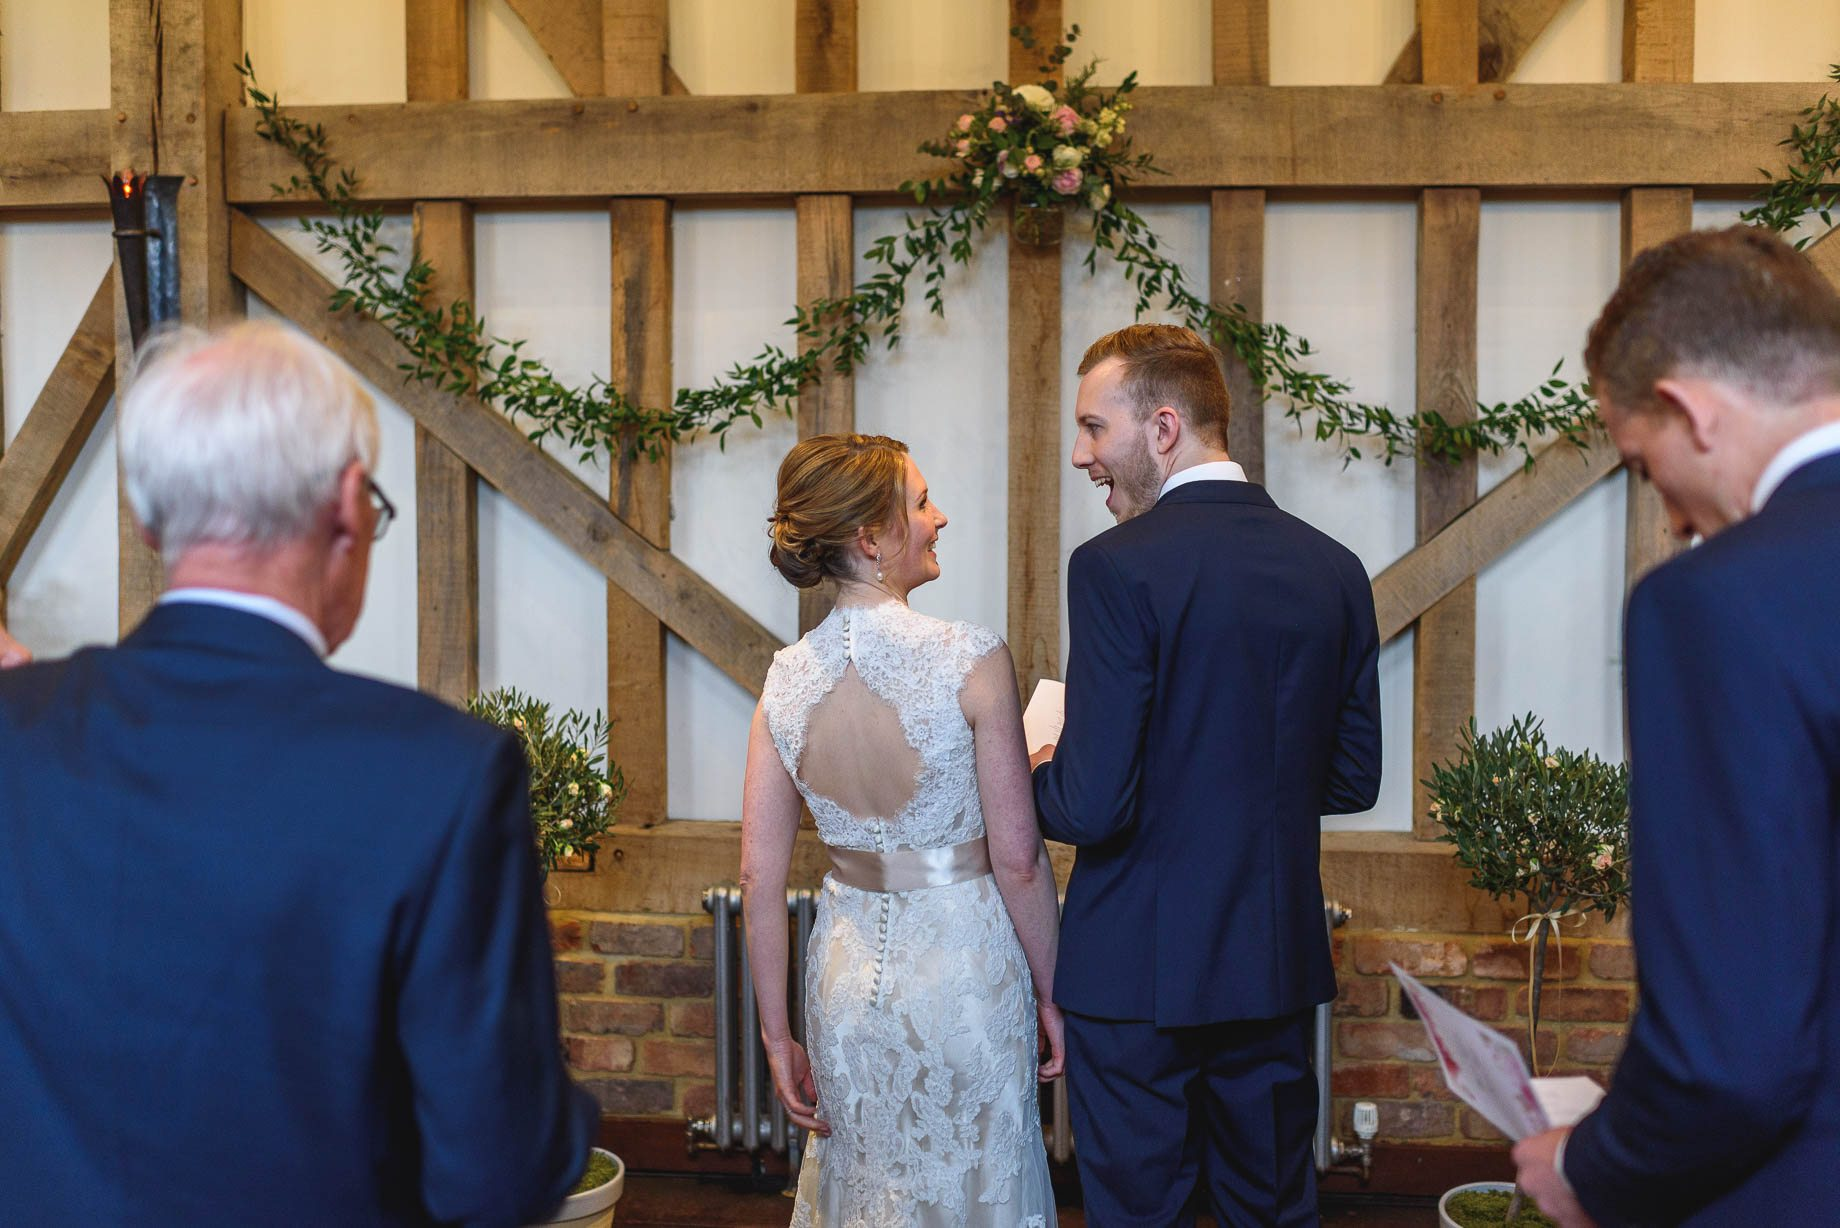 Surrey Wedding Photography by Guy Collier - Becca and James (49 of 145)